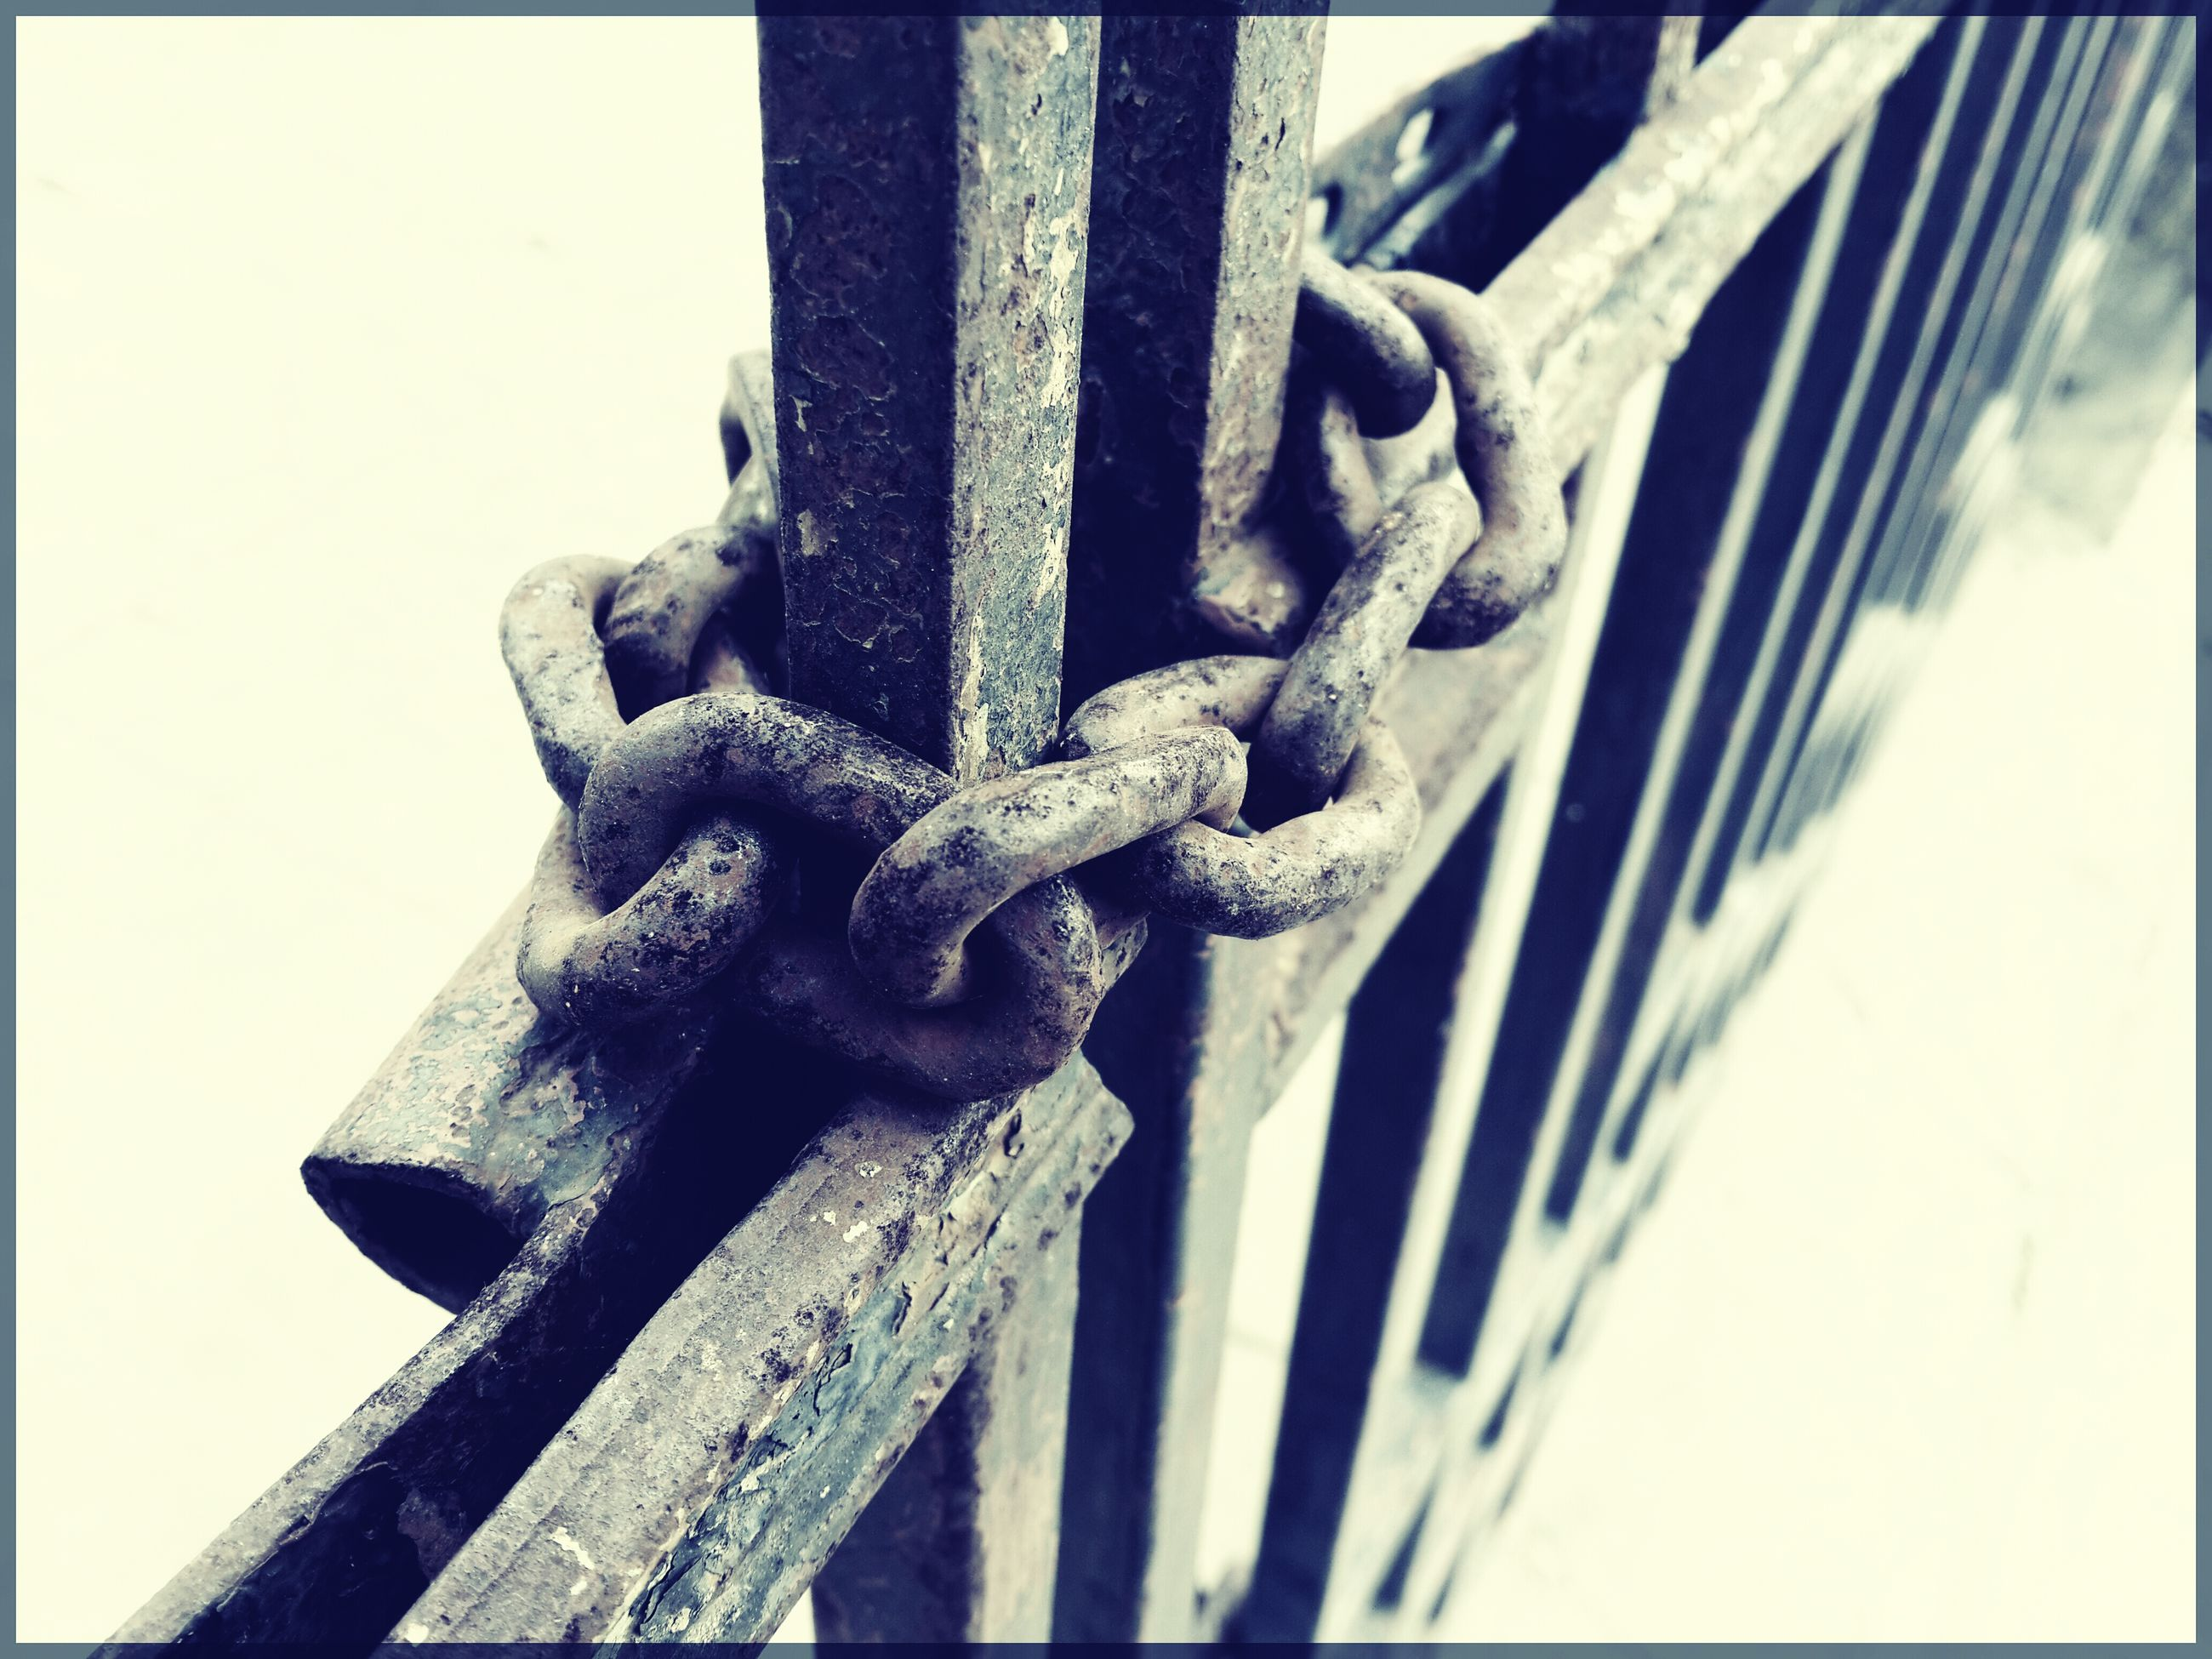 metal, close-up, metallic, old, rusty, security, strength, transfer print, chain, safety, focus on foreground, protection, auto post production filter, day, art and craft, outdoors, part of, no people, low angle view, detail